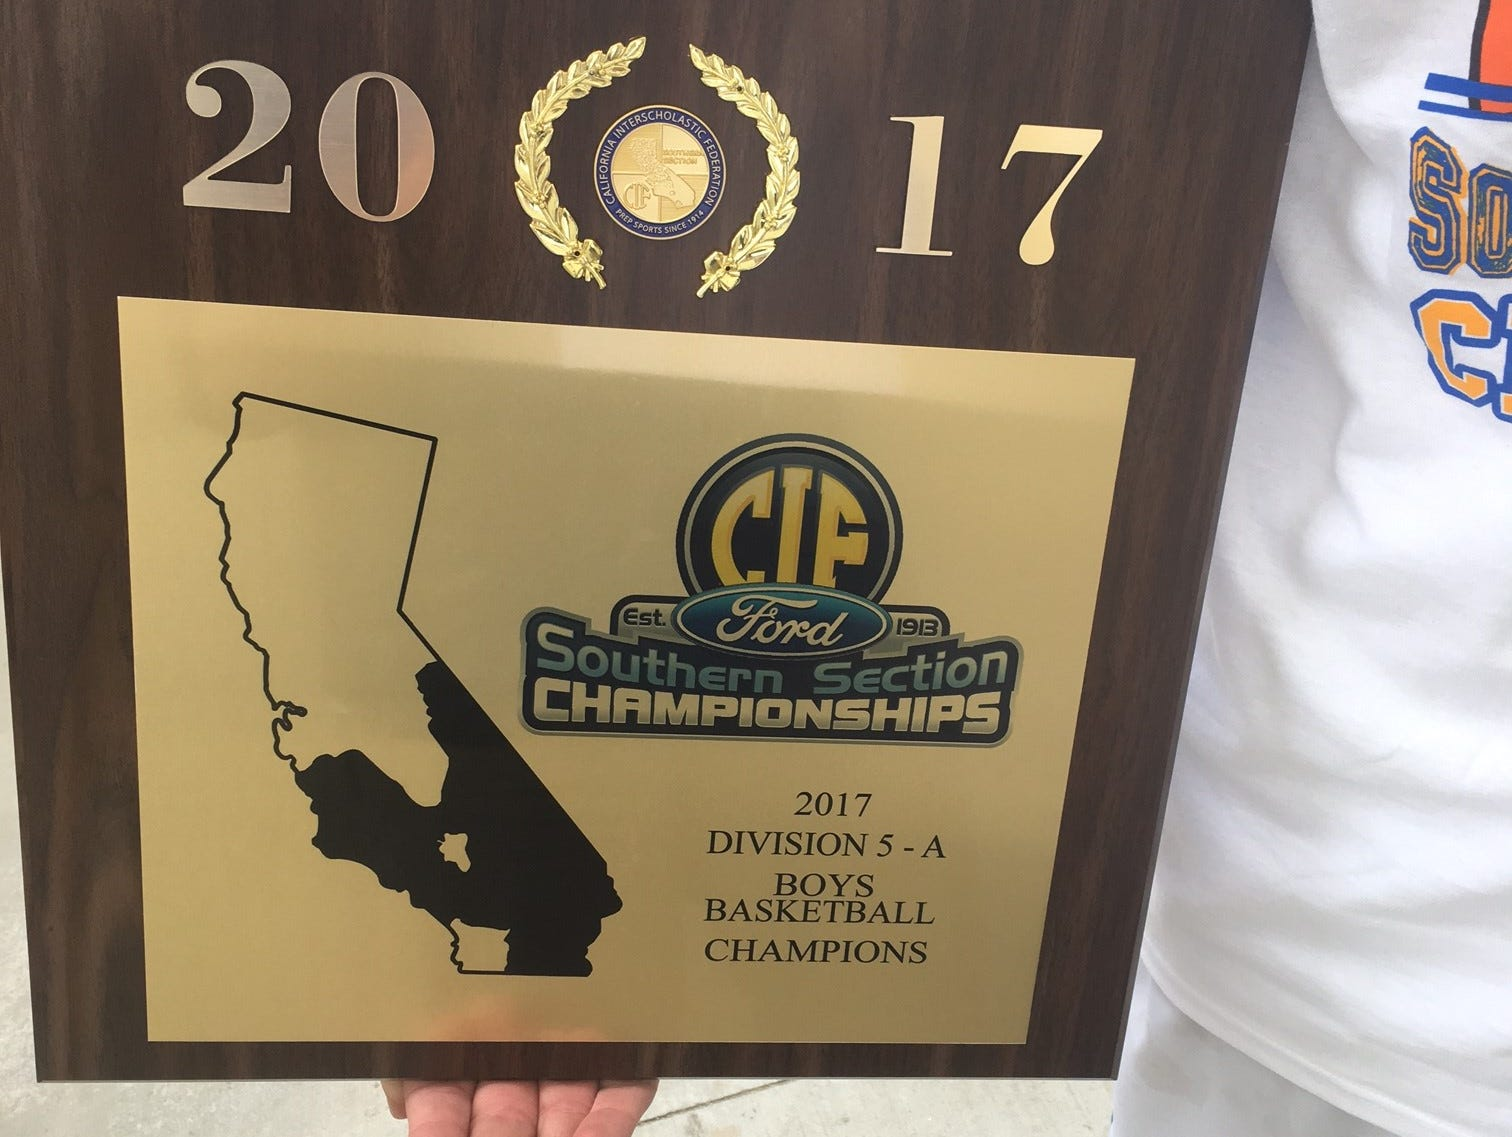 A close look at the plaque signifying that Desert Christian Academy is the Division 5A boys' basketball CIF-SS champions.